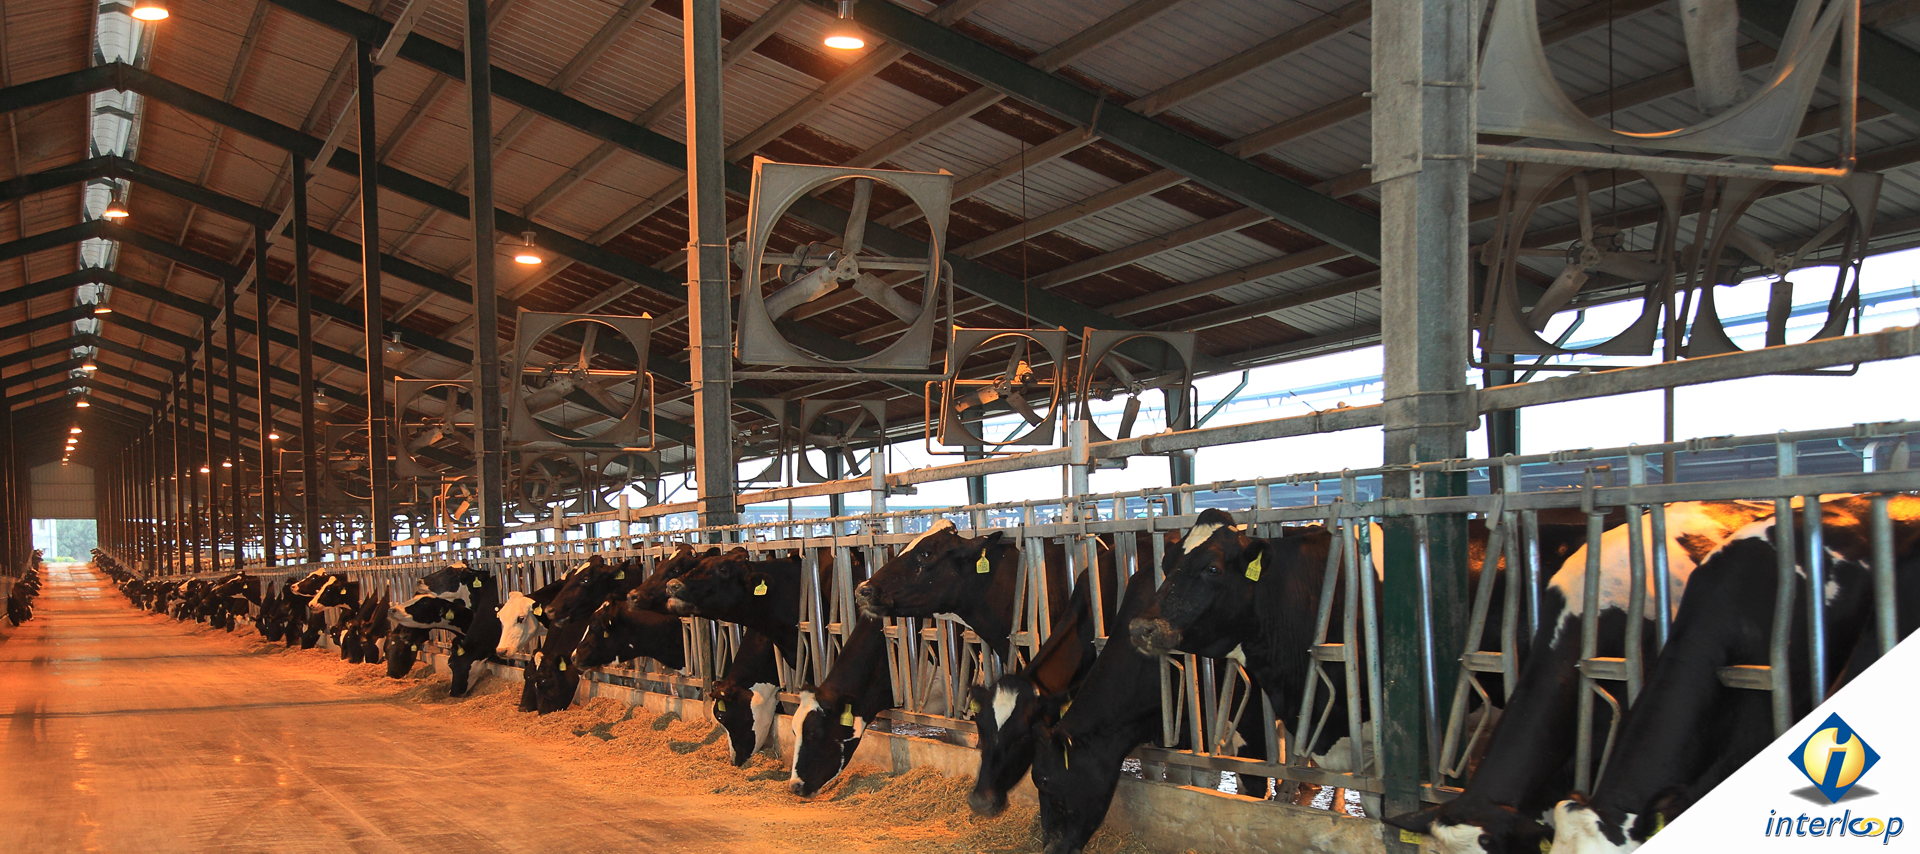 A Growing Dairy Business With The Highest Quality Products